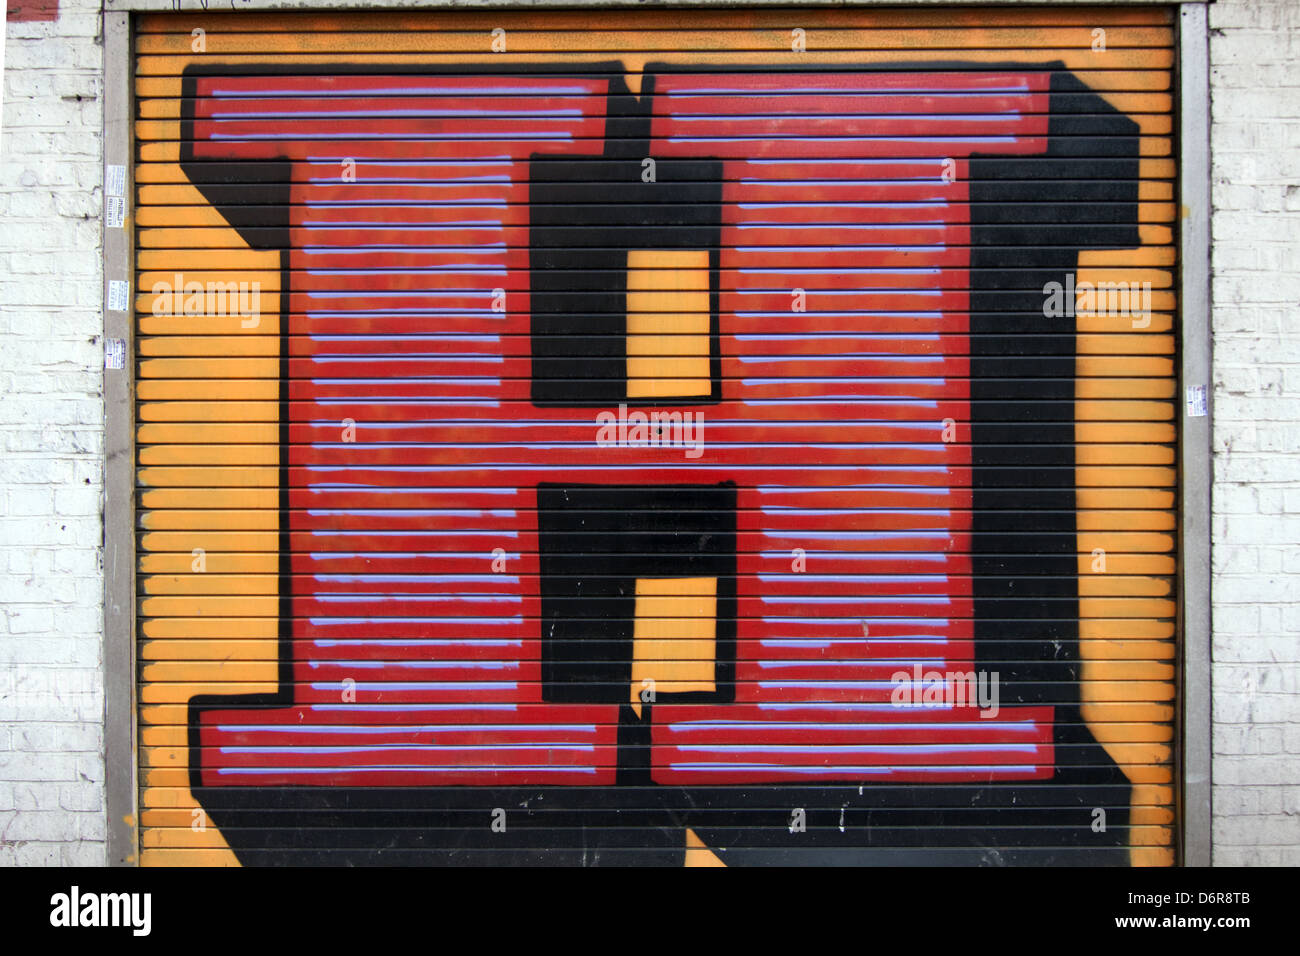 The letter H on a shutter in front of a shop  in London by the street artist Ben Eine - Stock Image